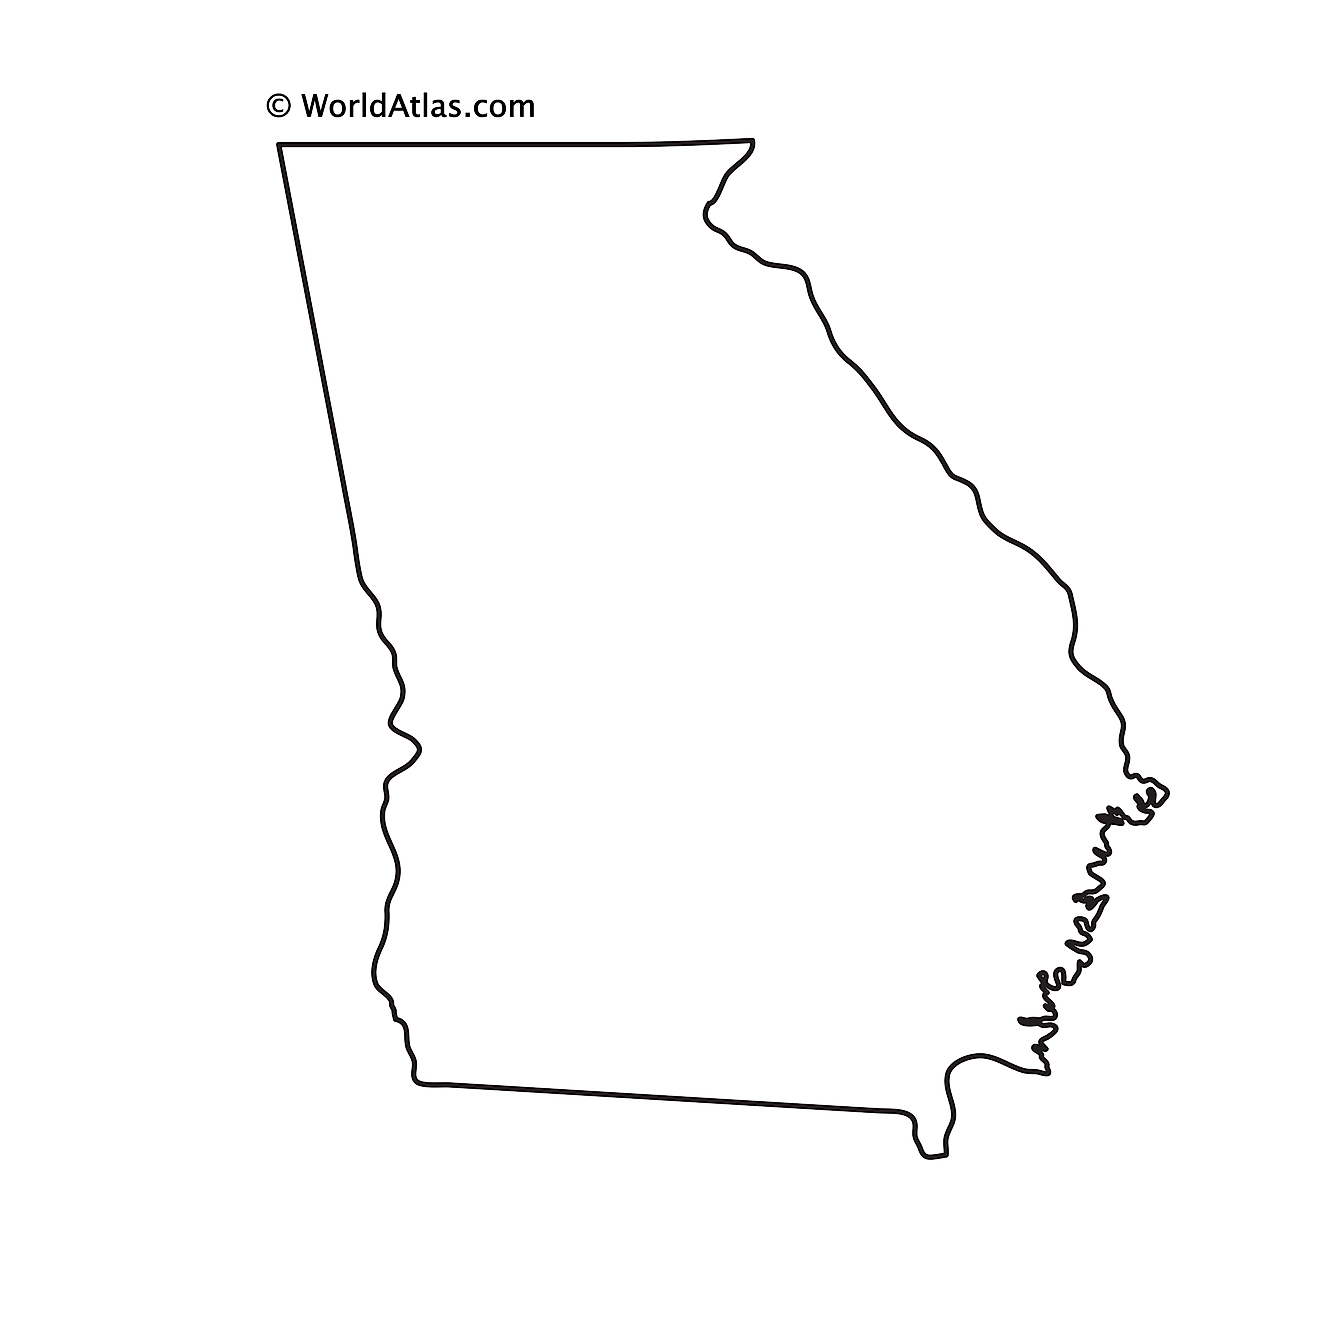 Blank Outline Map of Georgia